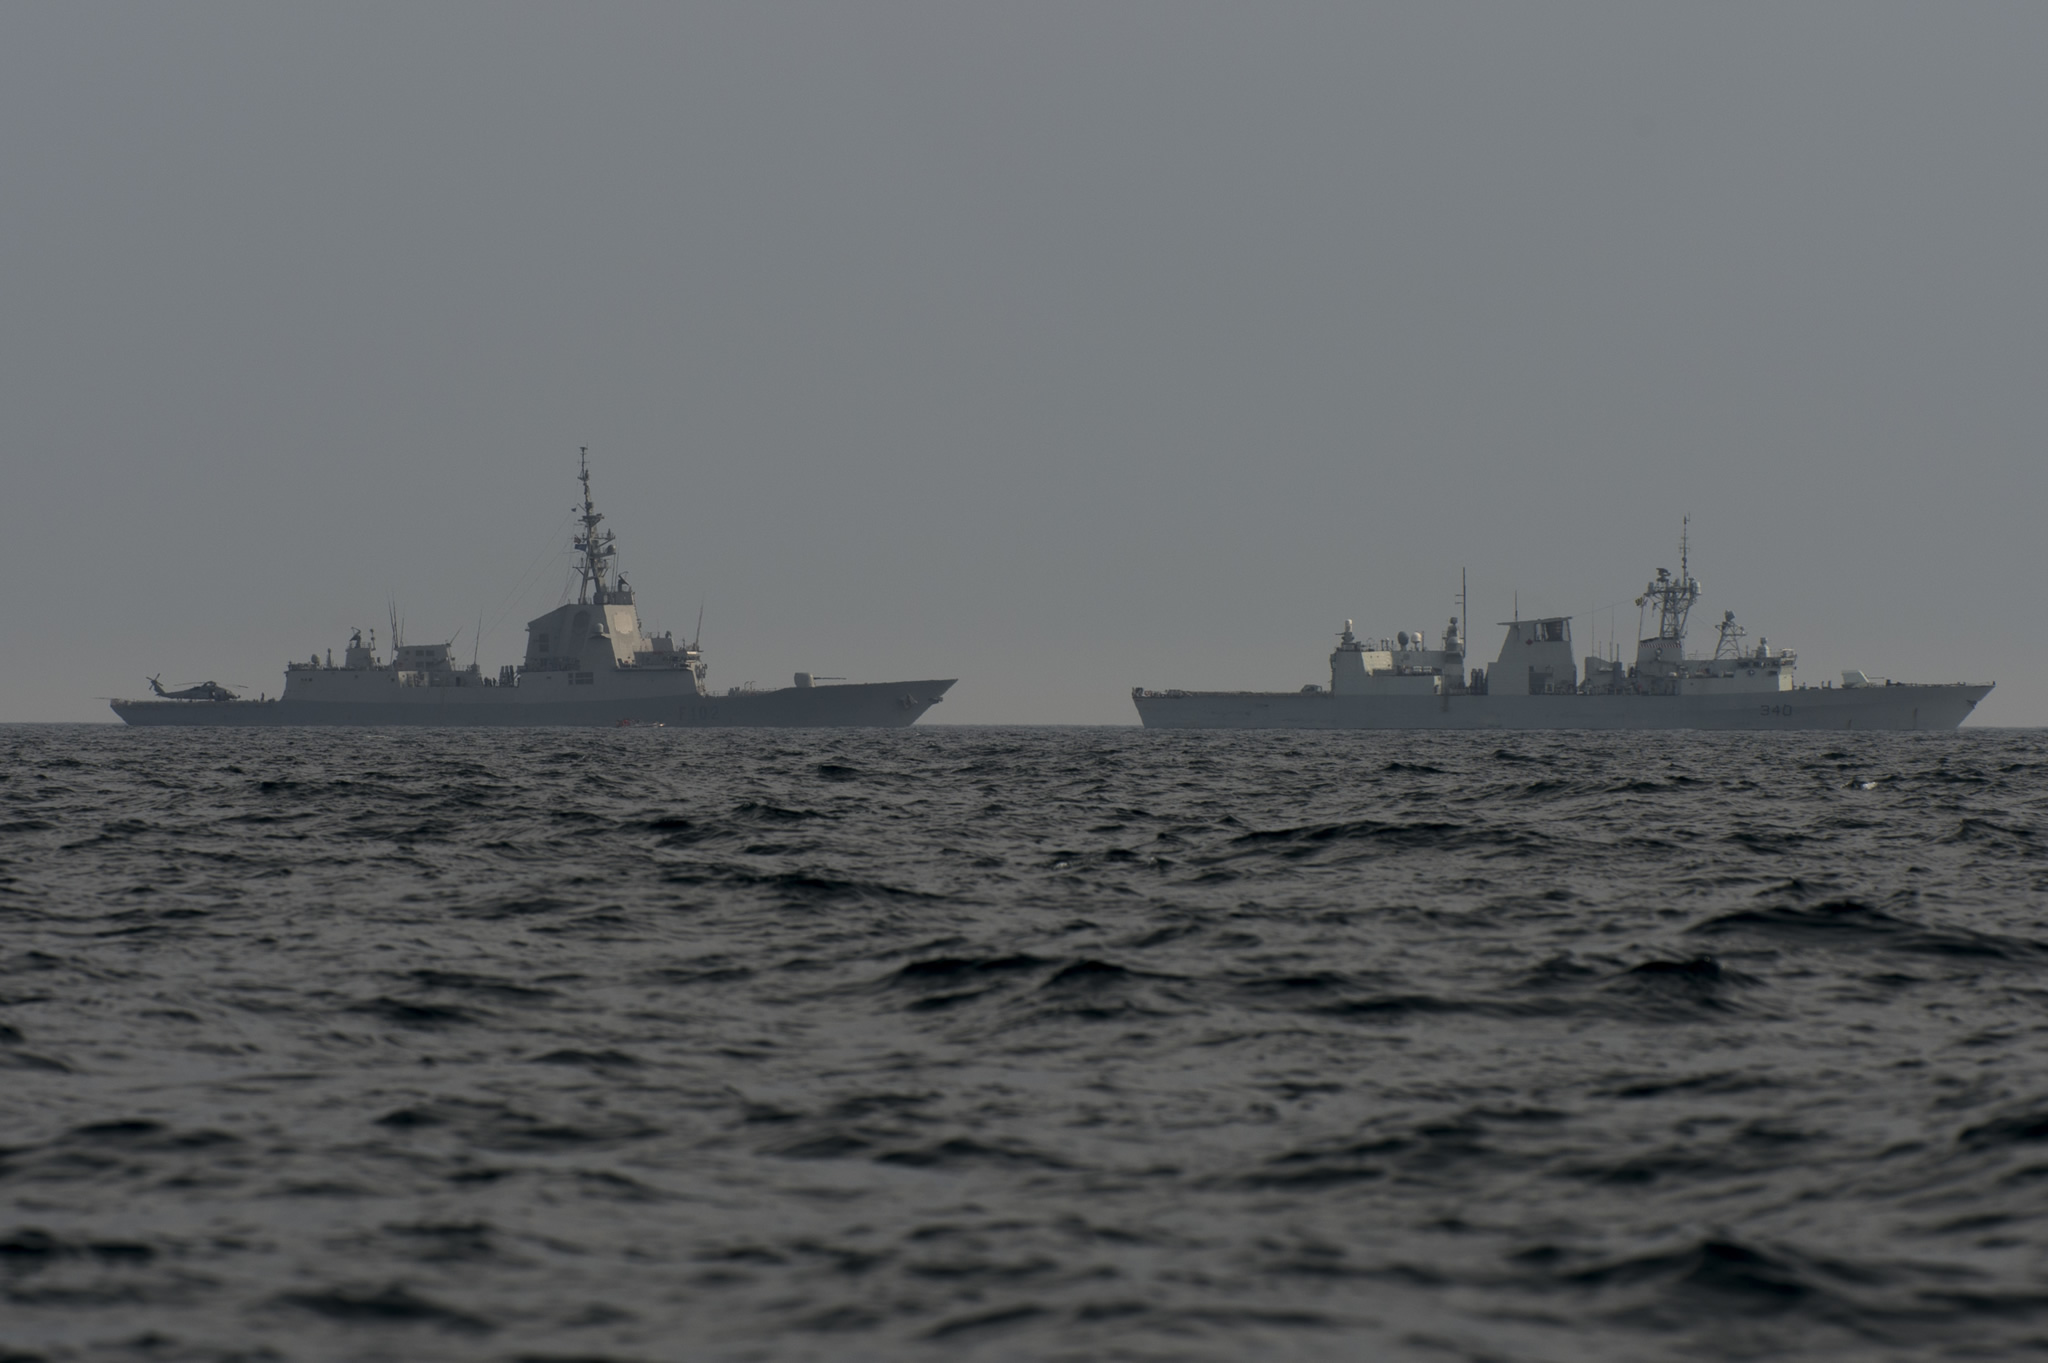 Black Sea. February 7, 2017 – HMCS St. John's and Spanish Naval frigate JUAN DE BORBON sail in close formation during their transit on the Black Sea during Operation REASSURANCE. (Photo: Leading Seaman Ogle Henry, Formation Imaging Services)